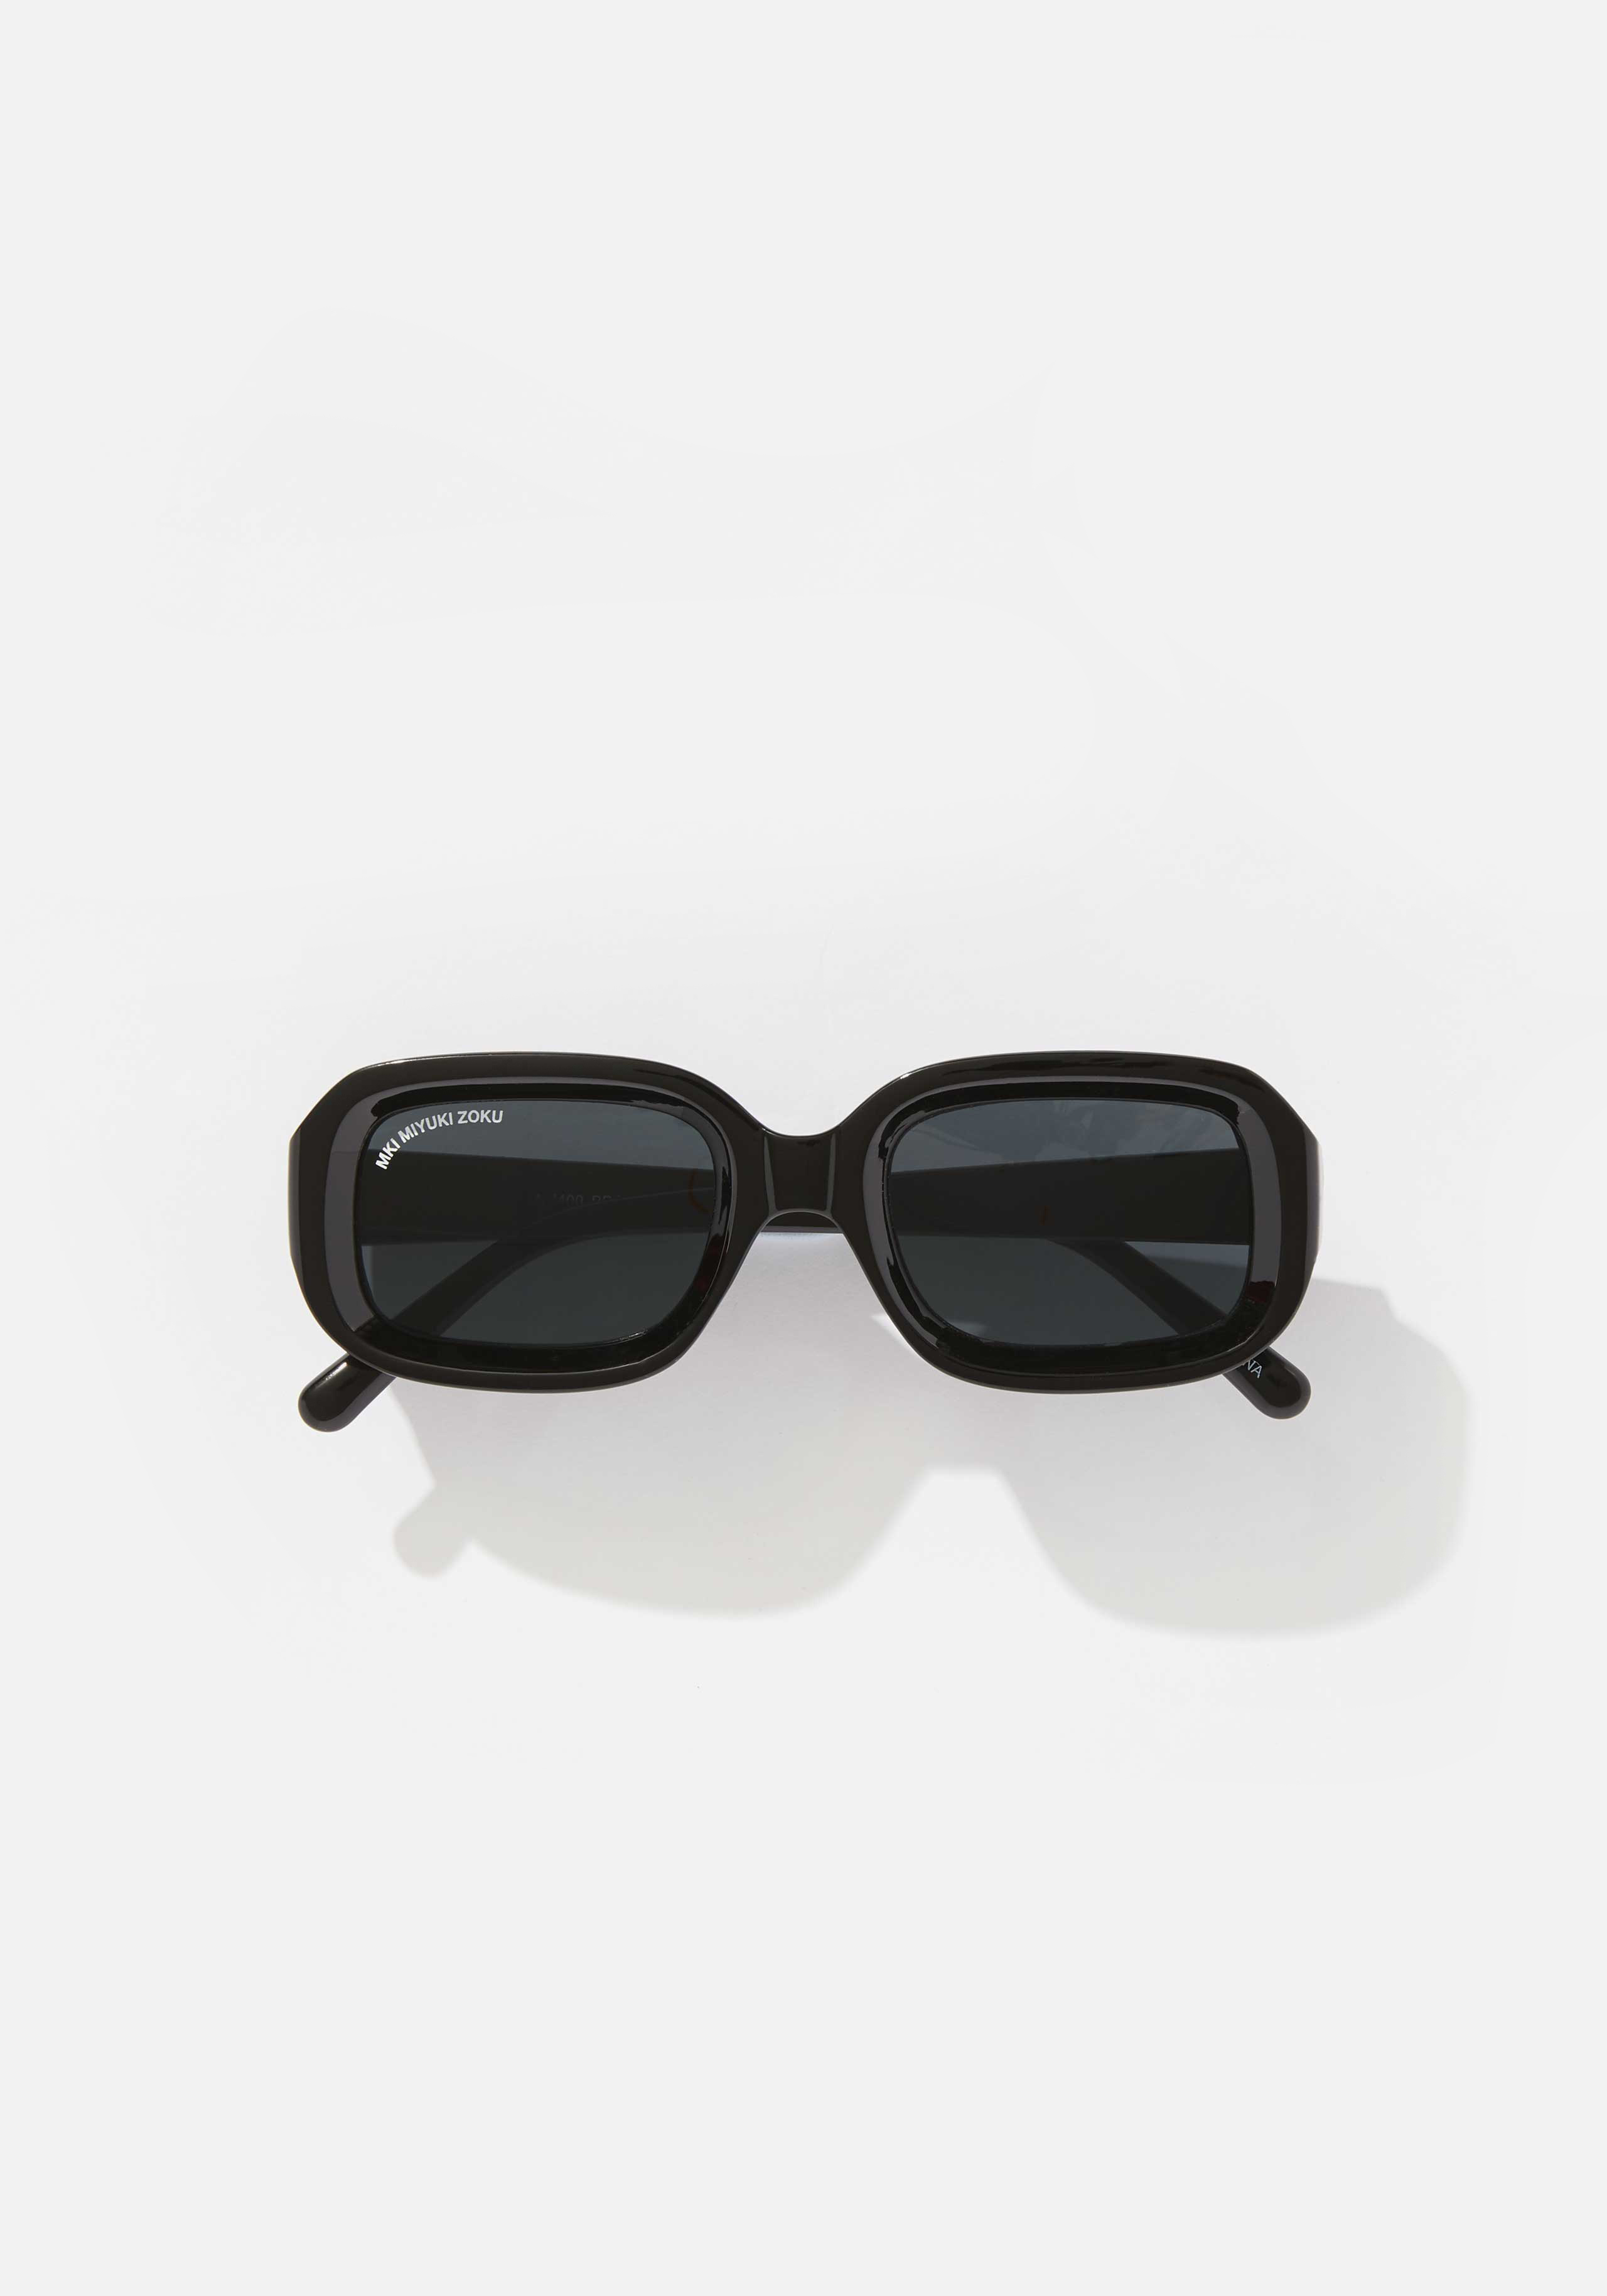 mki moulded convex sunglasses 1